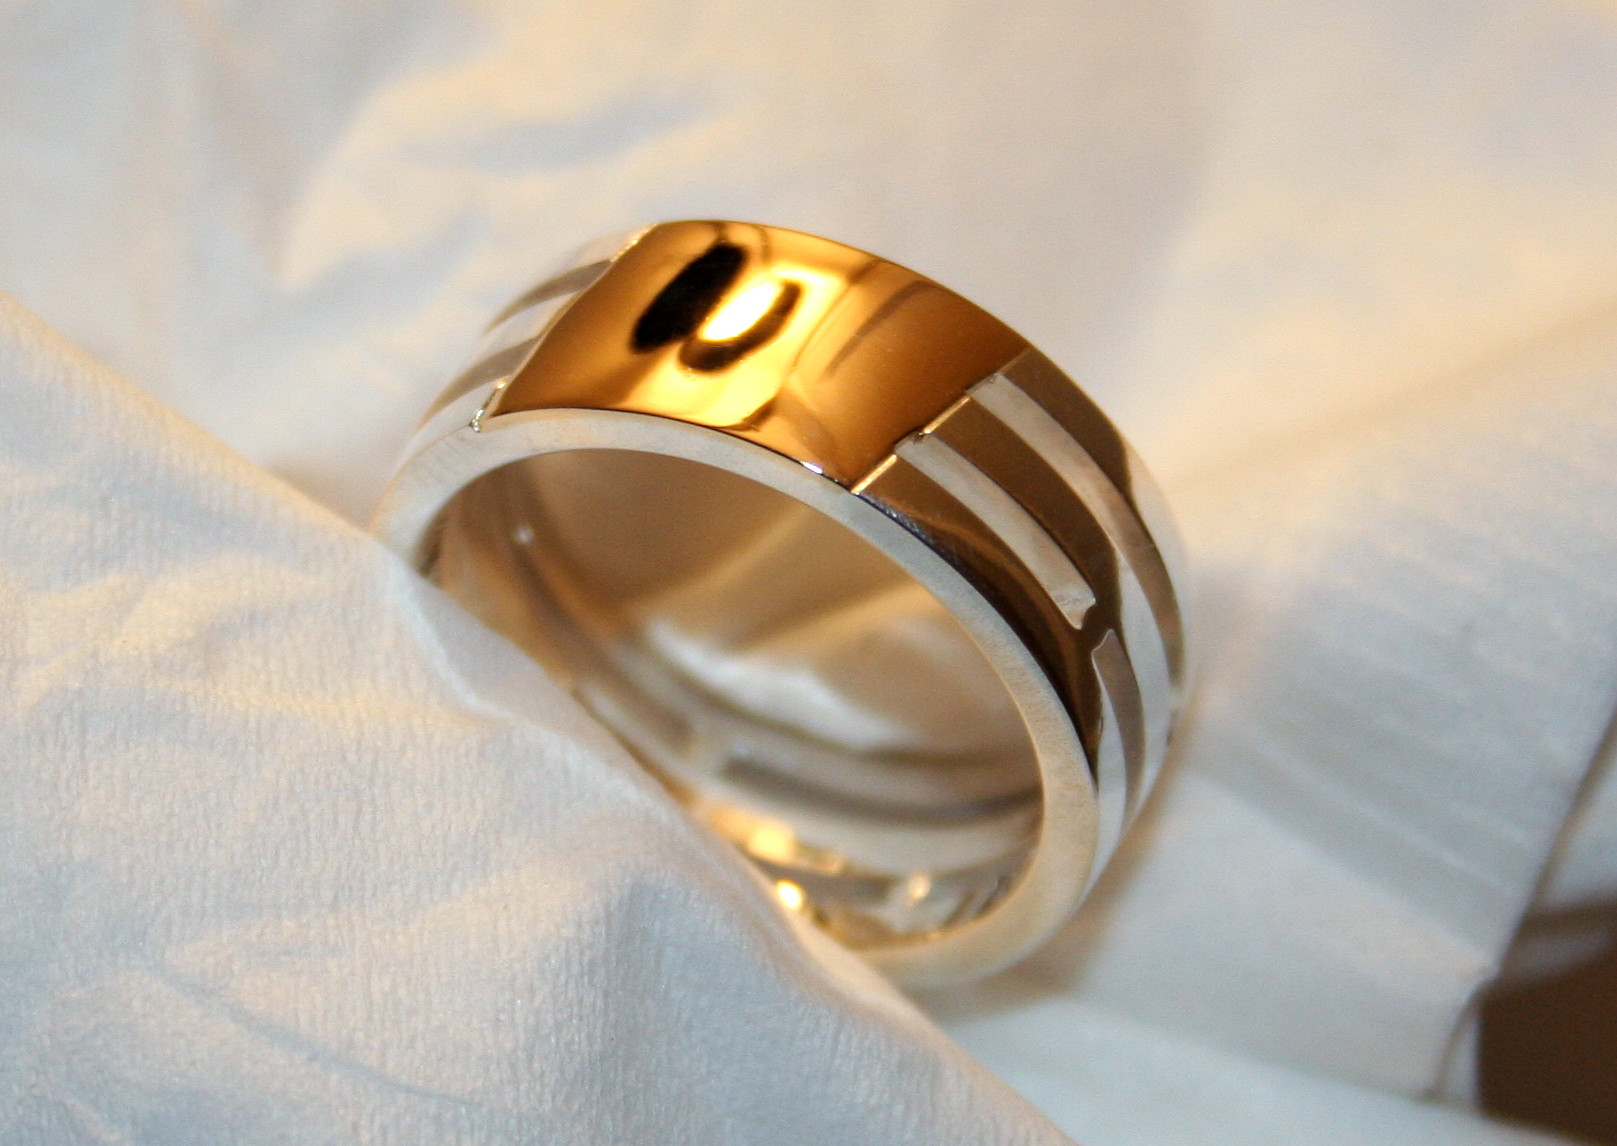 Wedding Ring Shop, male wedding ring